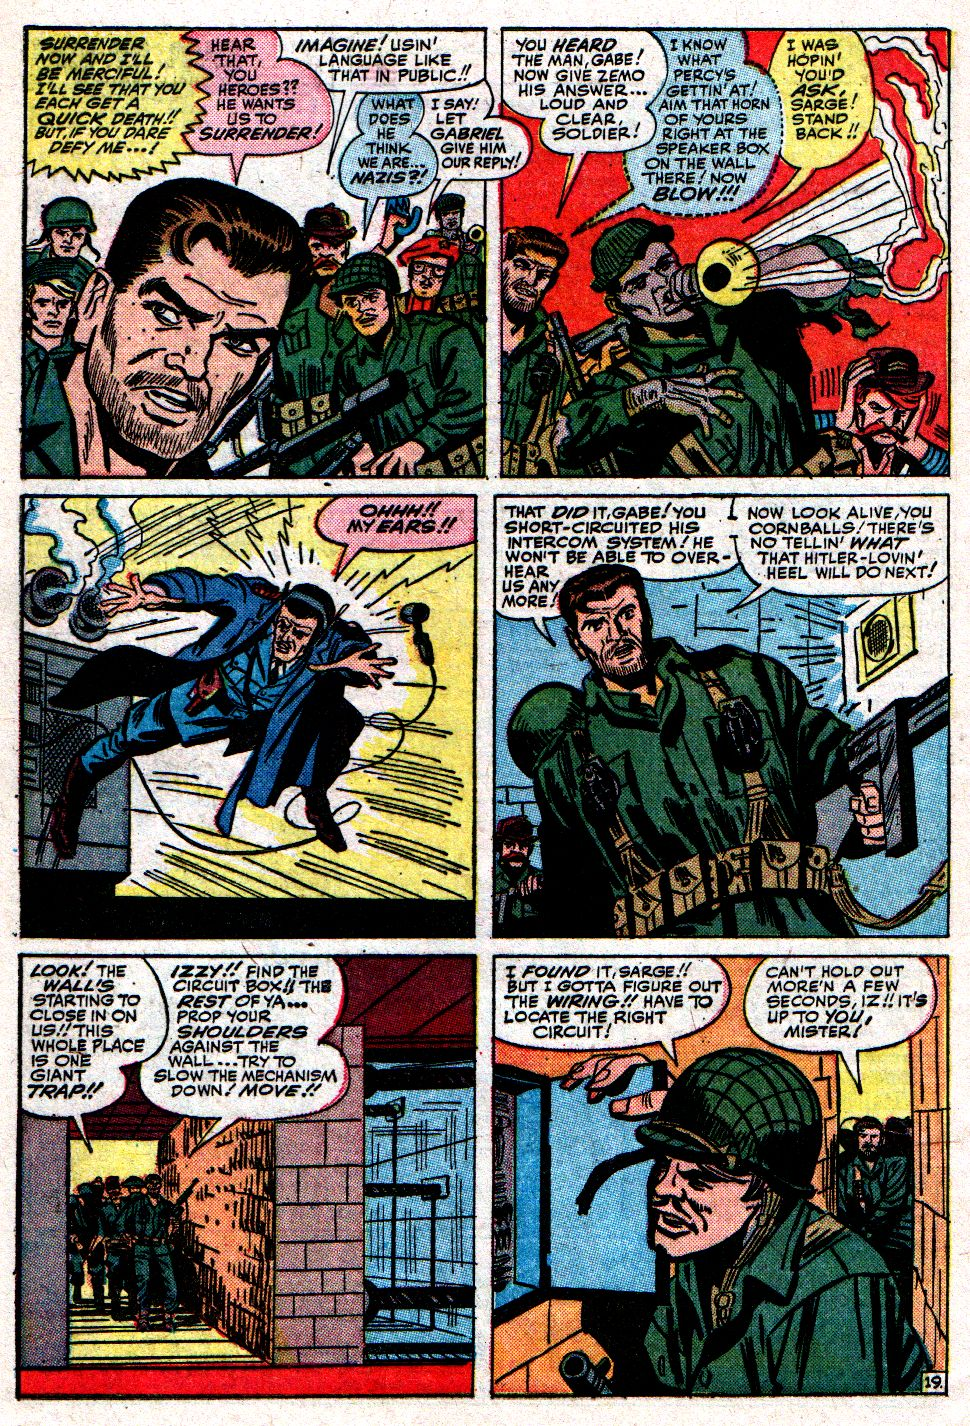 Read online Sgt. Fury comic -  Issue #8 - 28